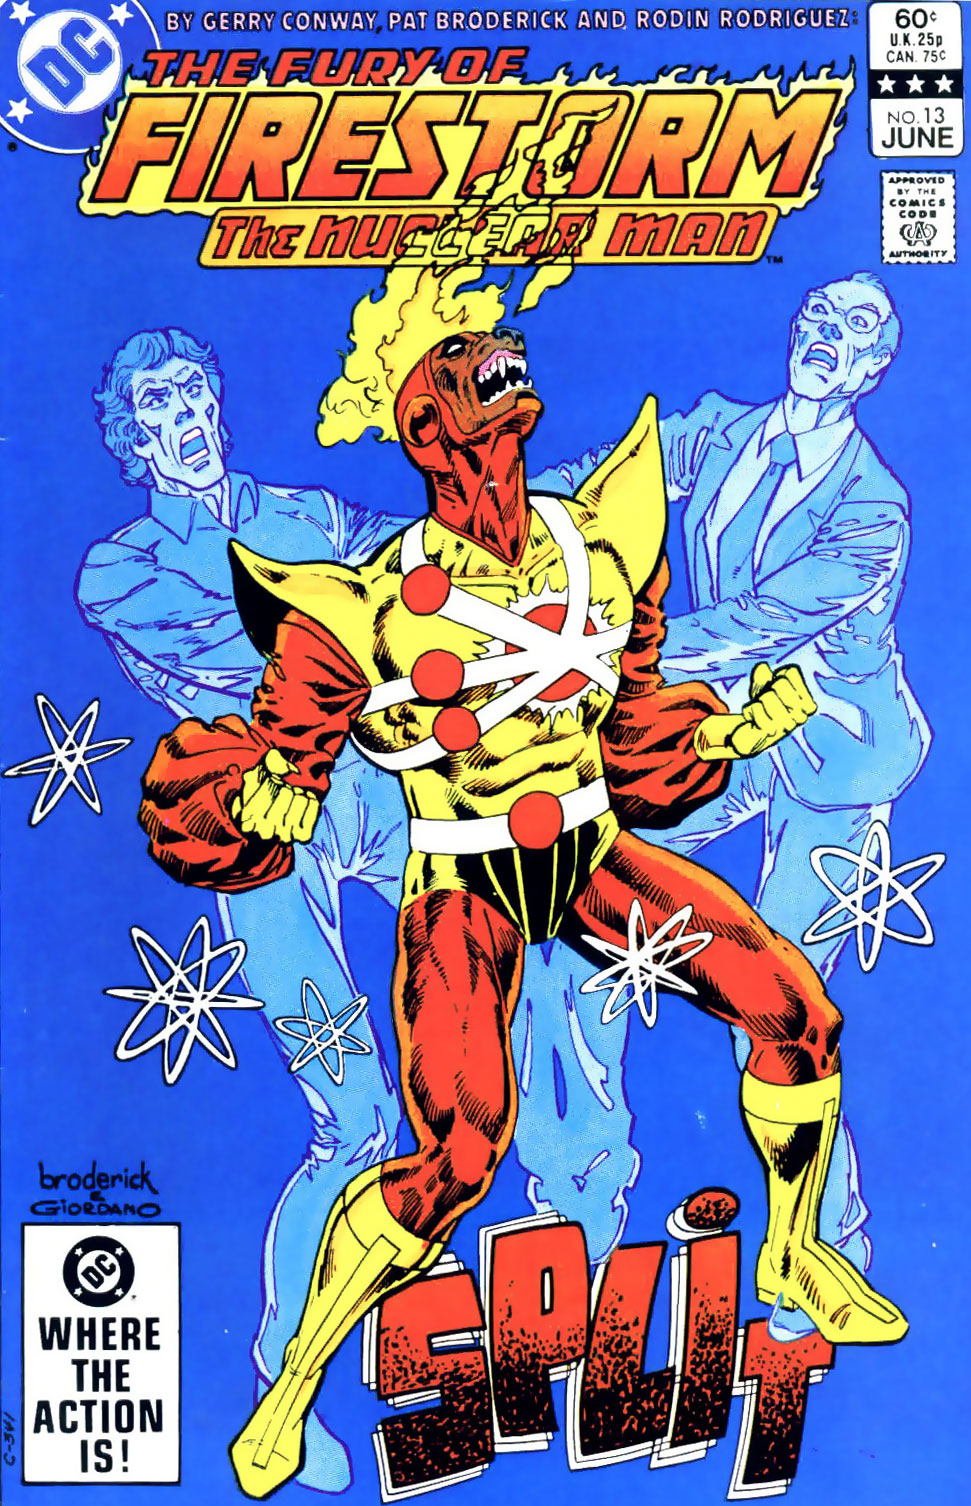 Fury of Firestorm The Nuclear Man #13 cover by Pat Broderick & Dick Giordano